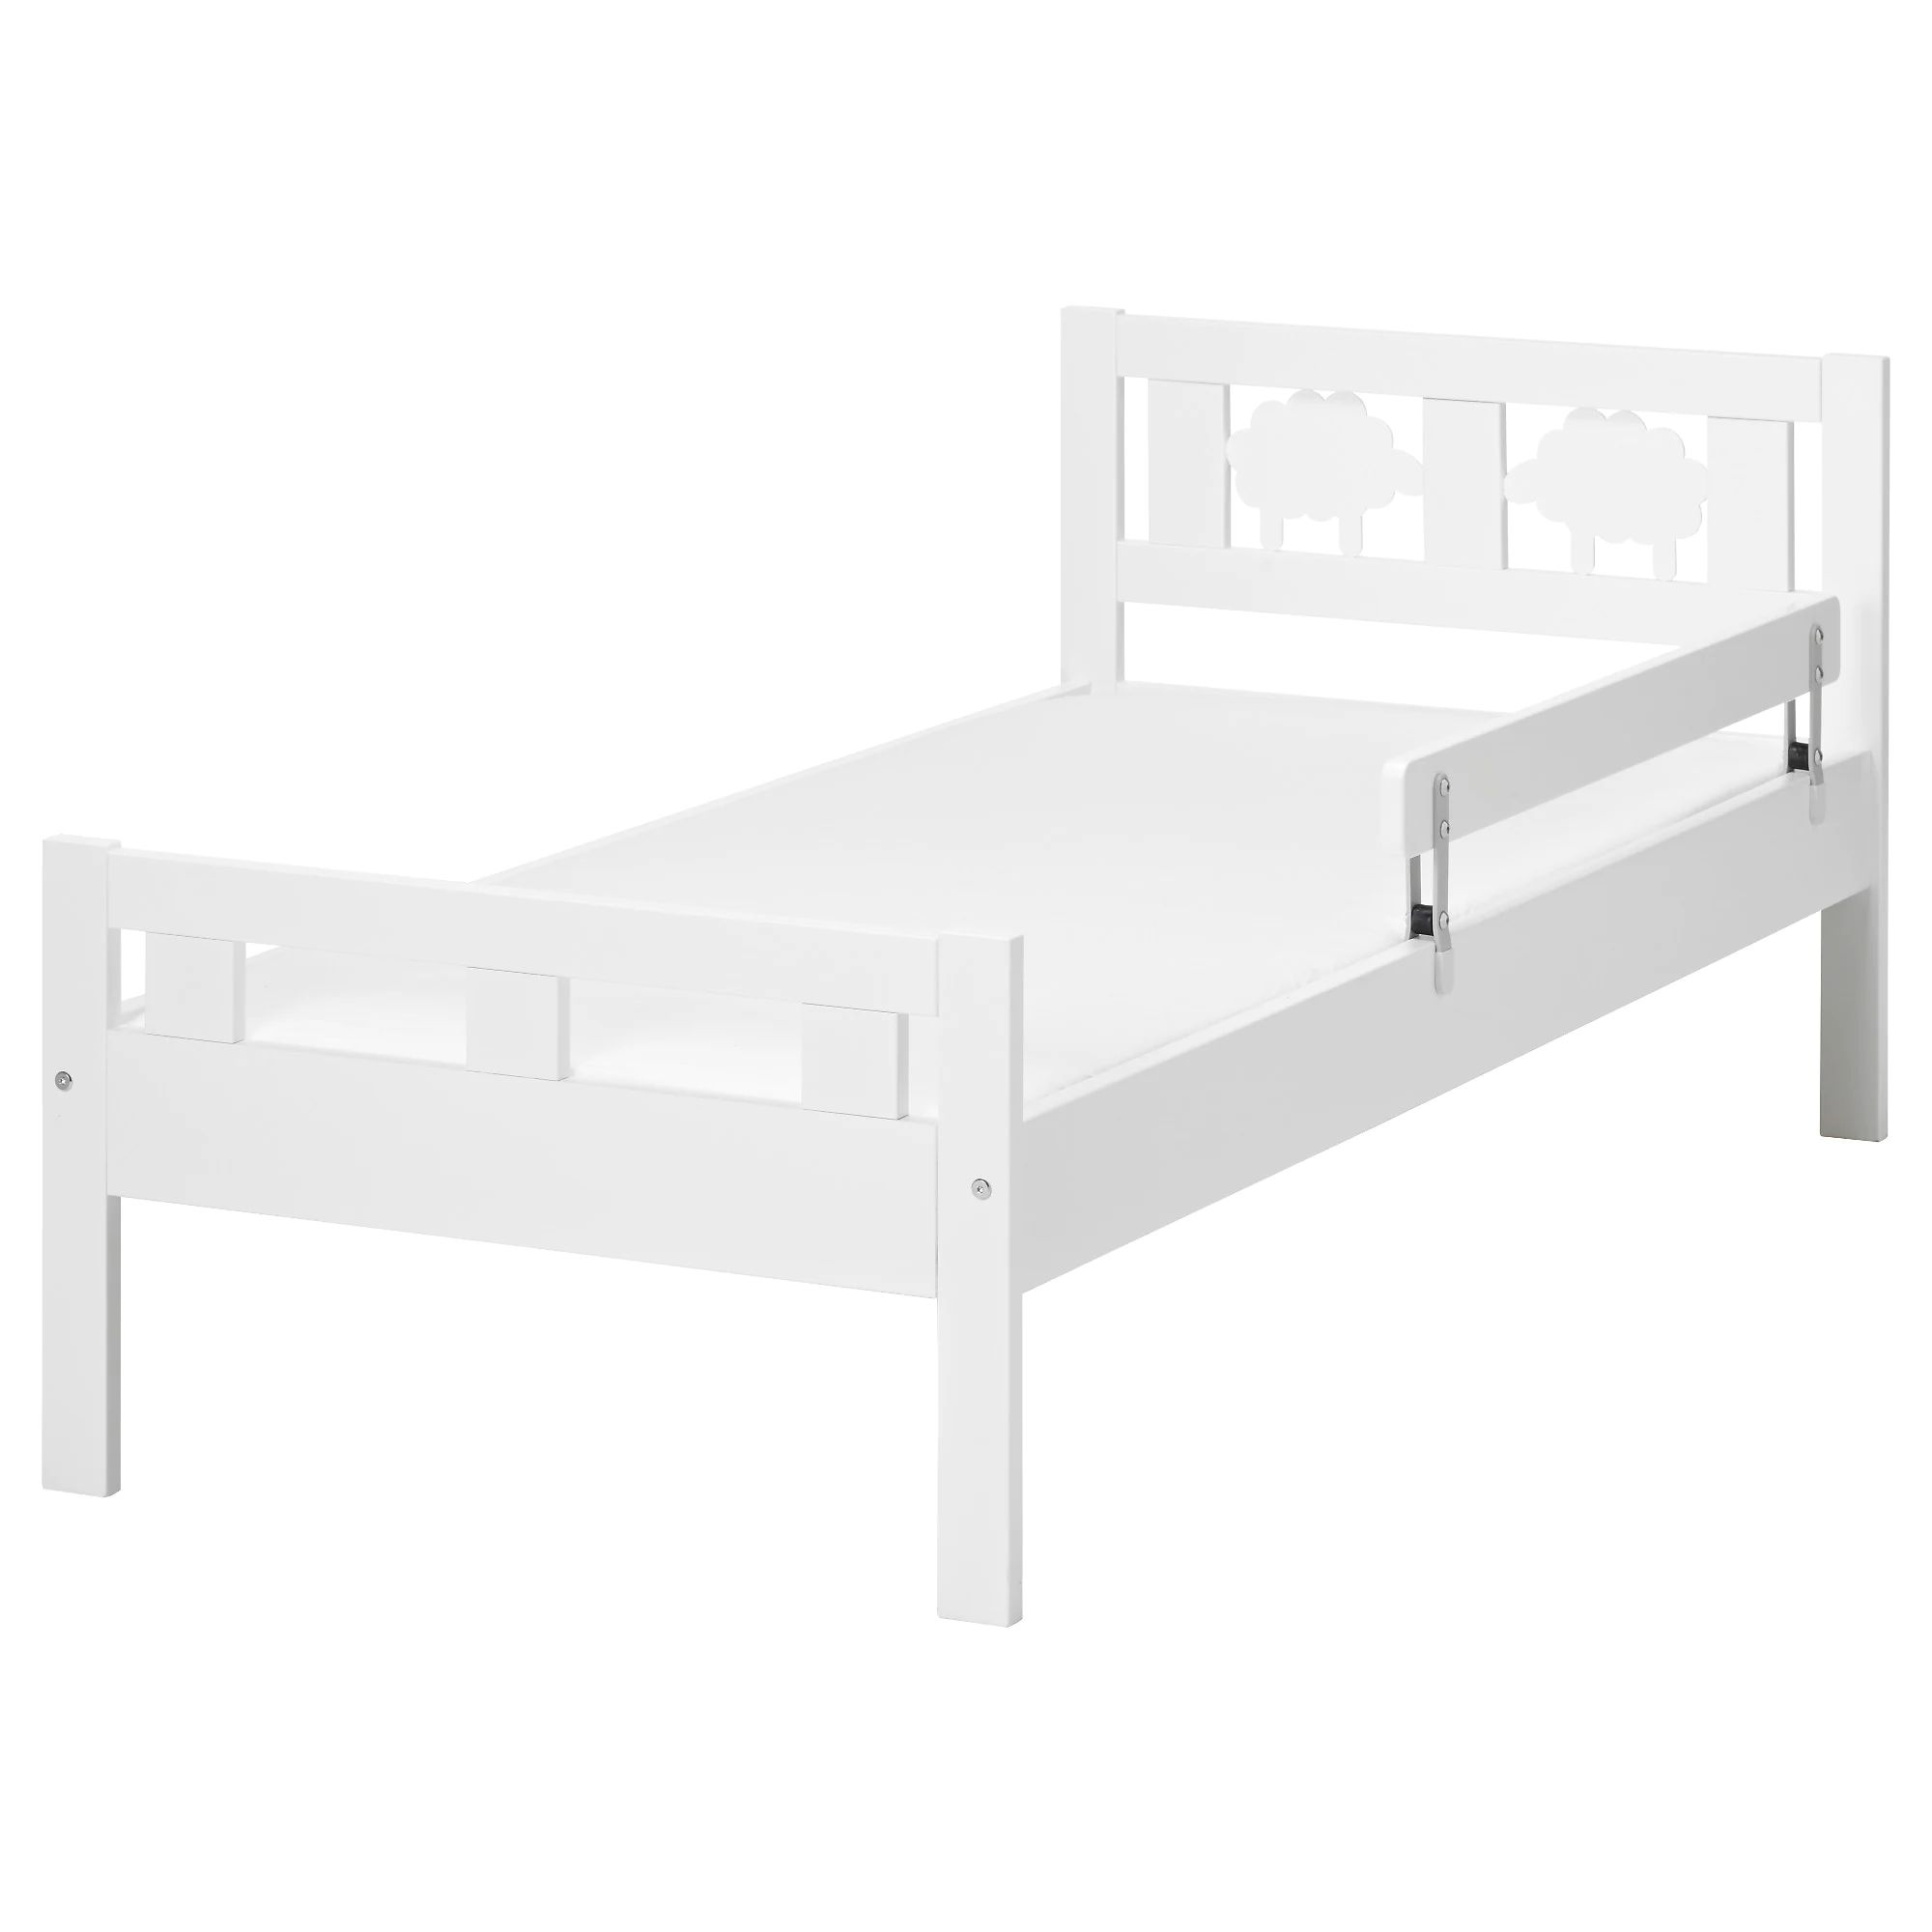 Kritter bed frame with slatted bed base white length 65 width 29